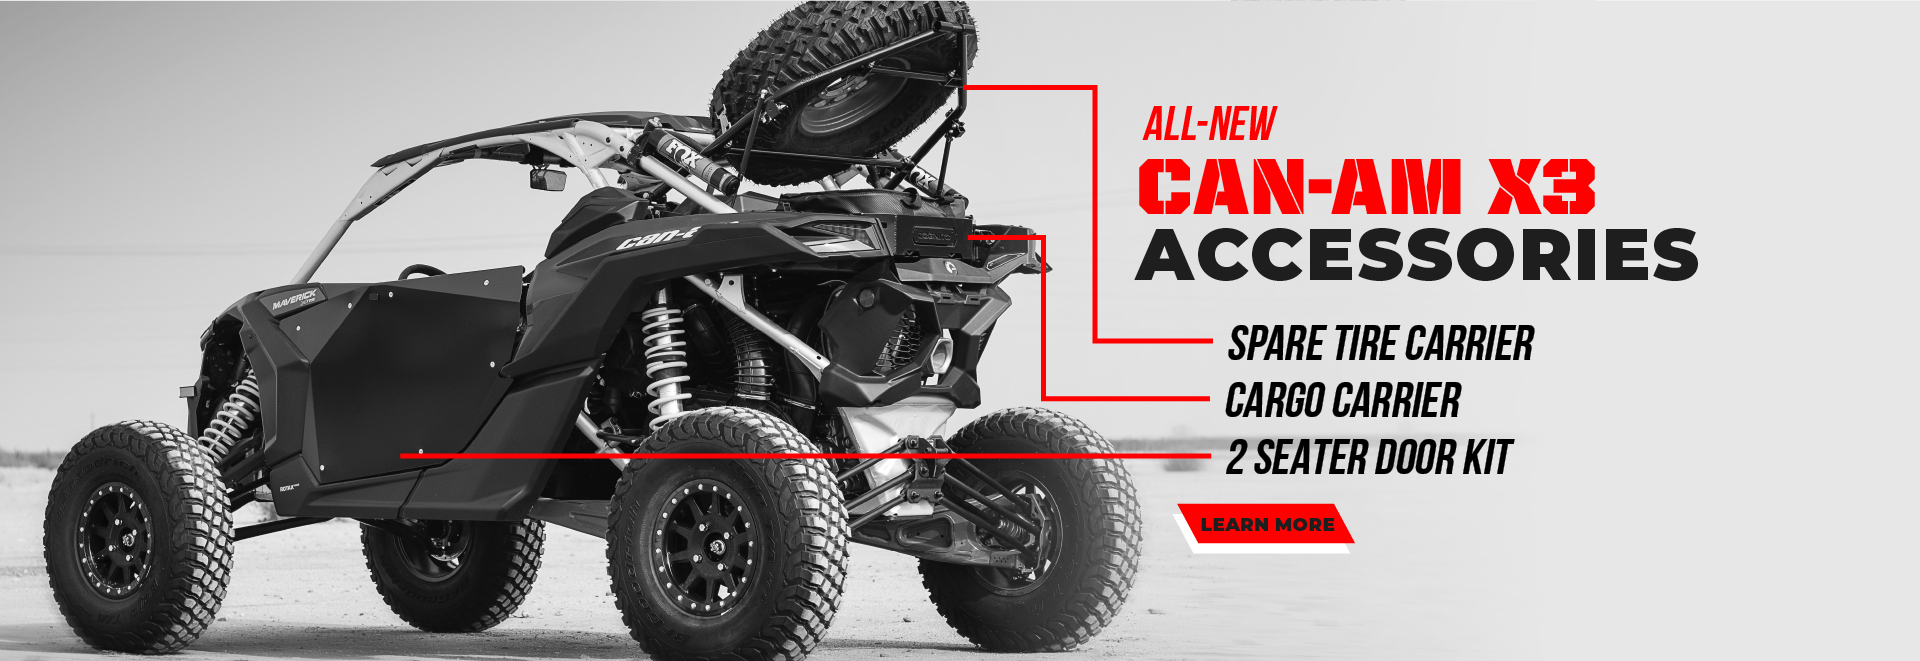 Cognito Can-Am Products